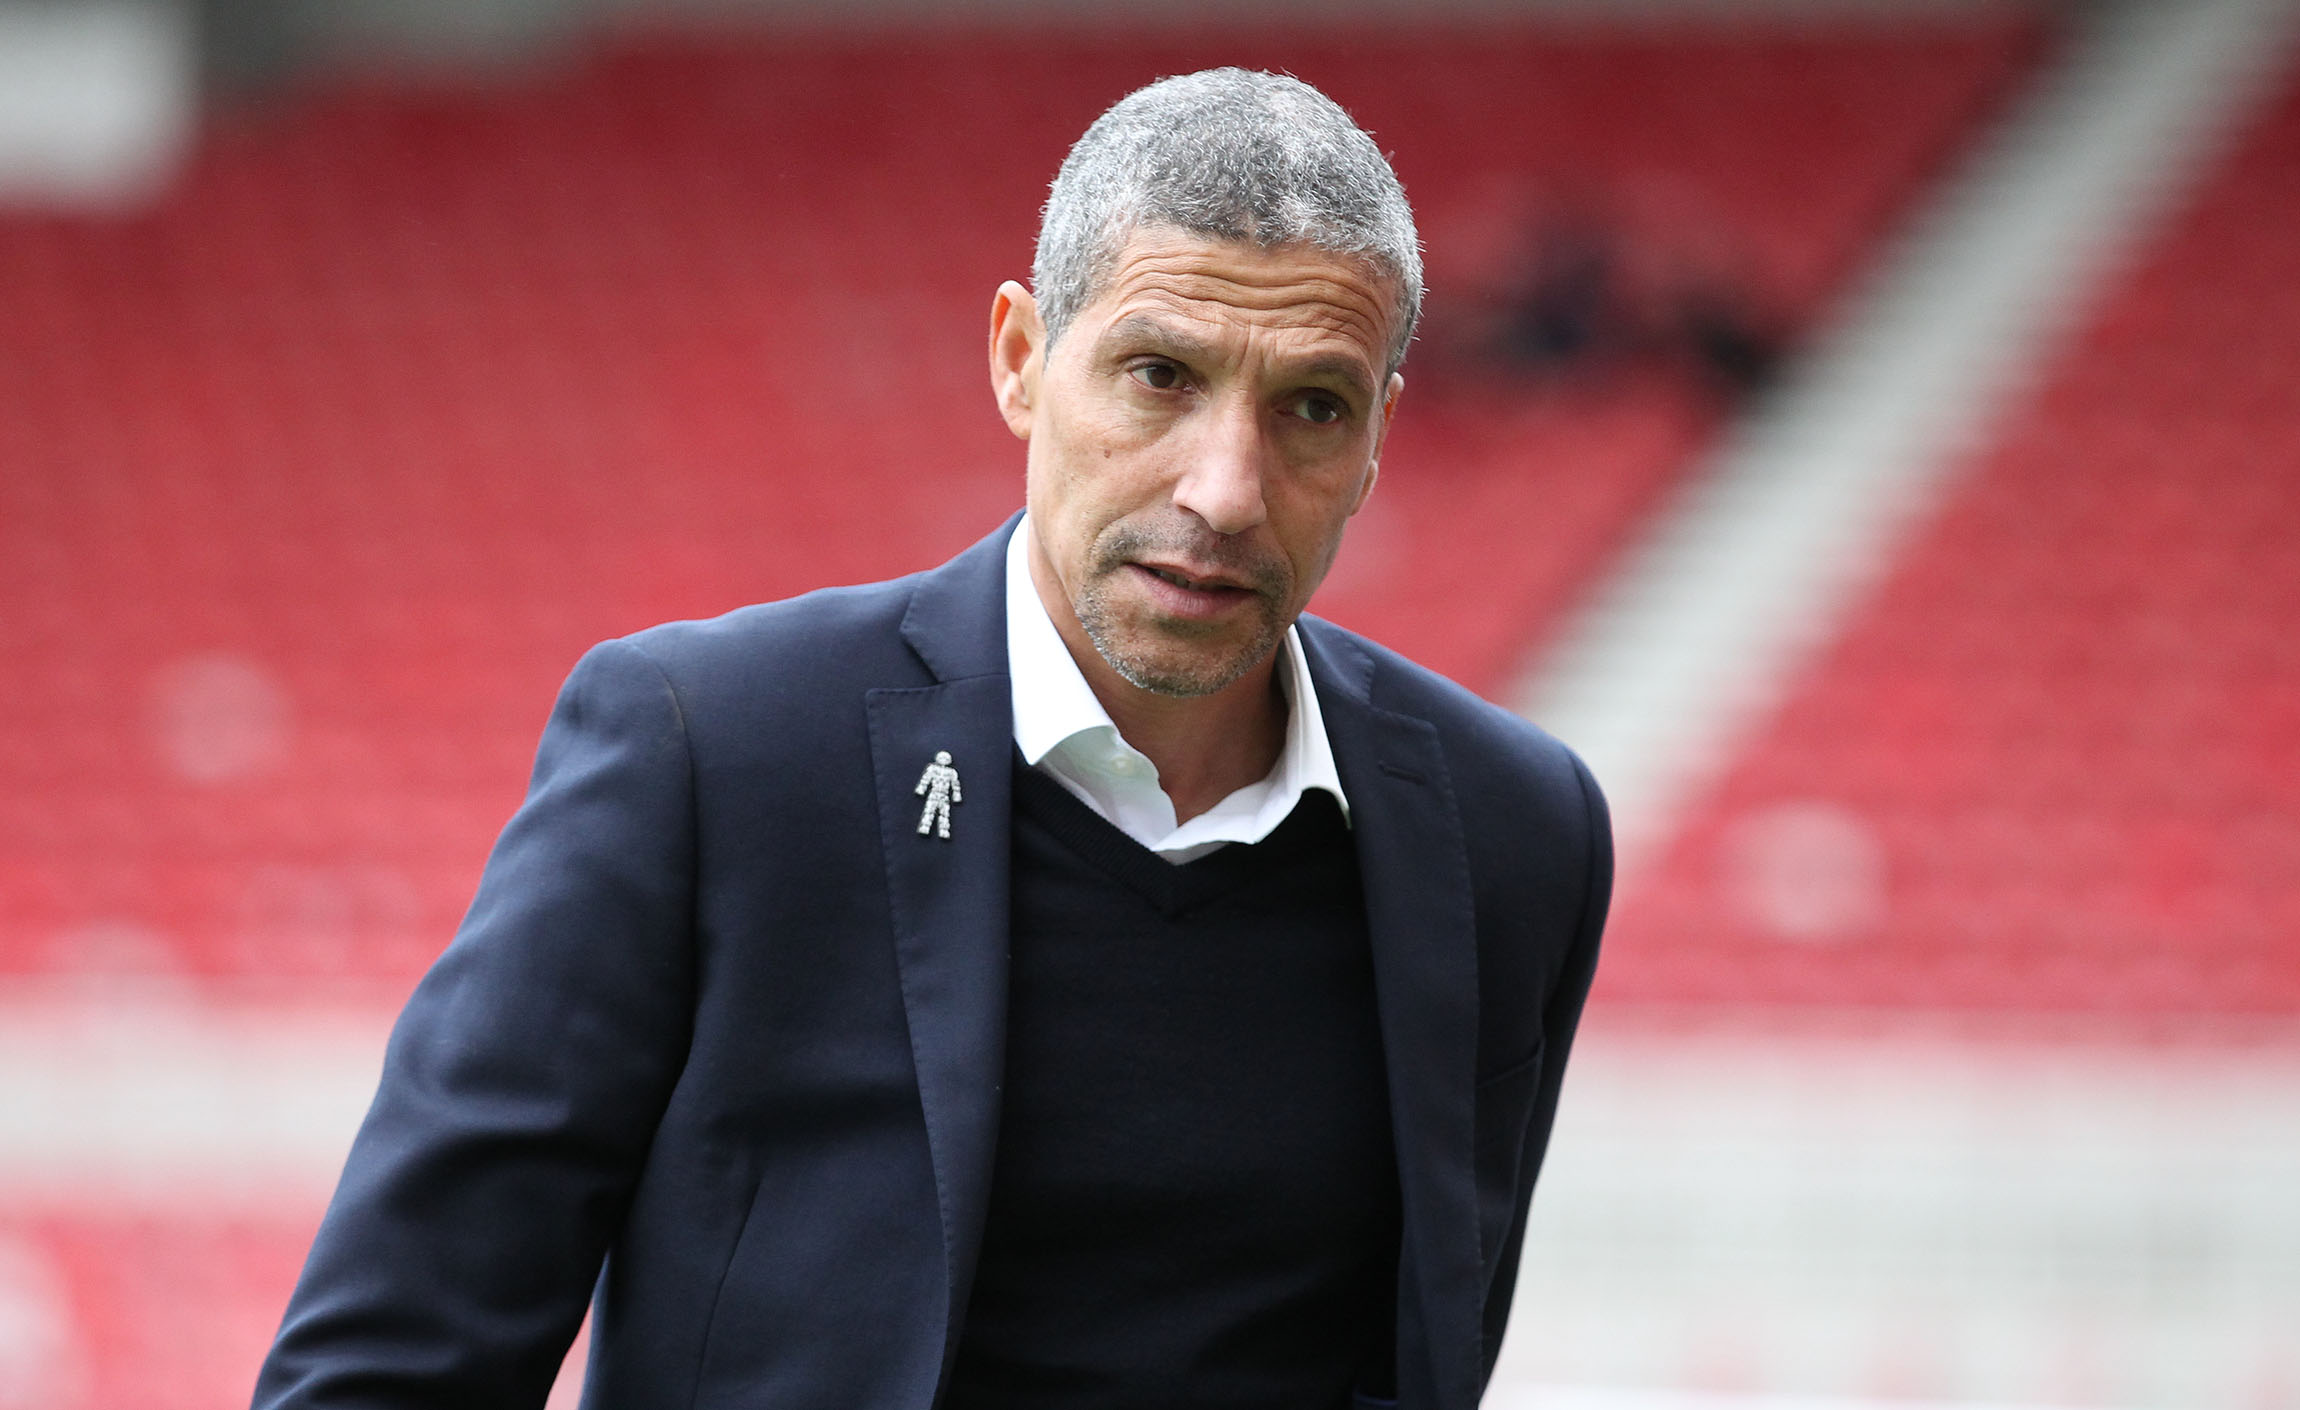 Chris Hughton wants his players to stay in control of their emotions in the heat of their clash at Palace